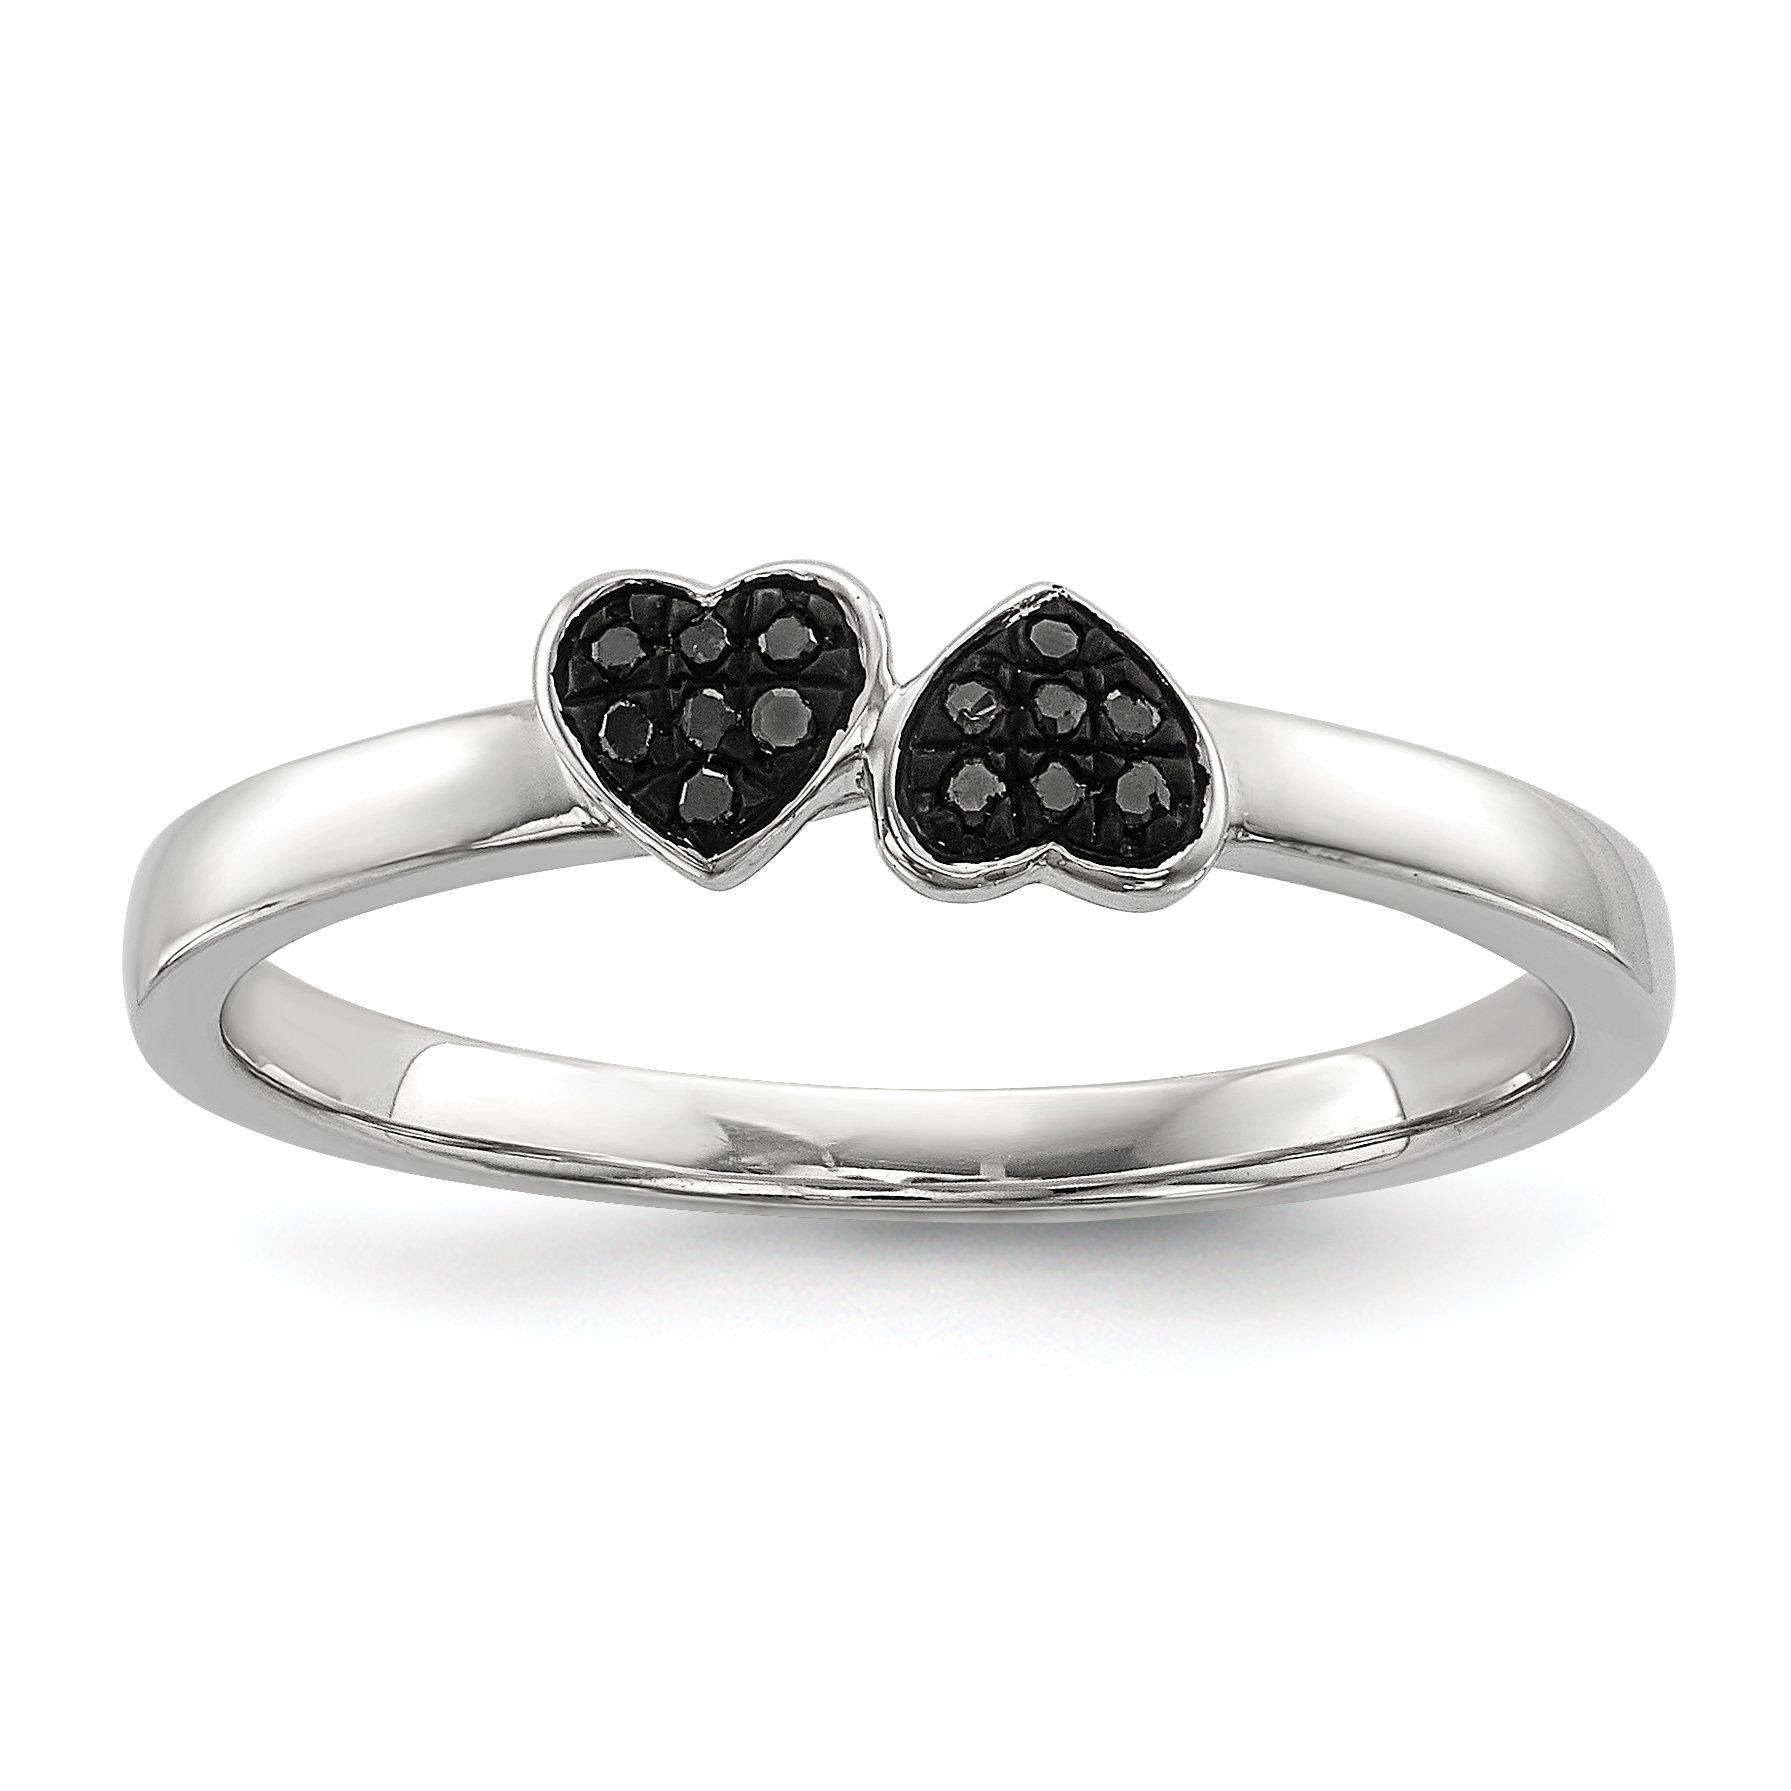 ICE CARATS 925 Sterling Silver Black Diamond Stackable Band Ring Size 6.00 S/love Fine Jewelry Gift For Women Heart